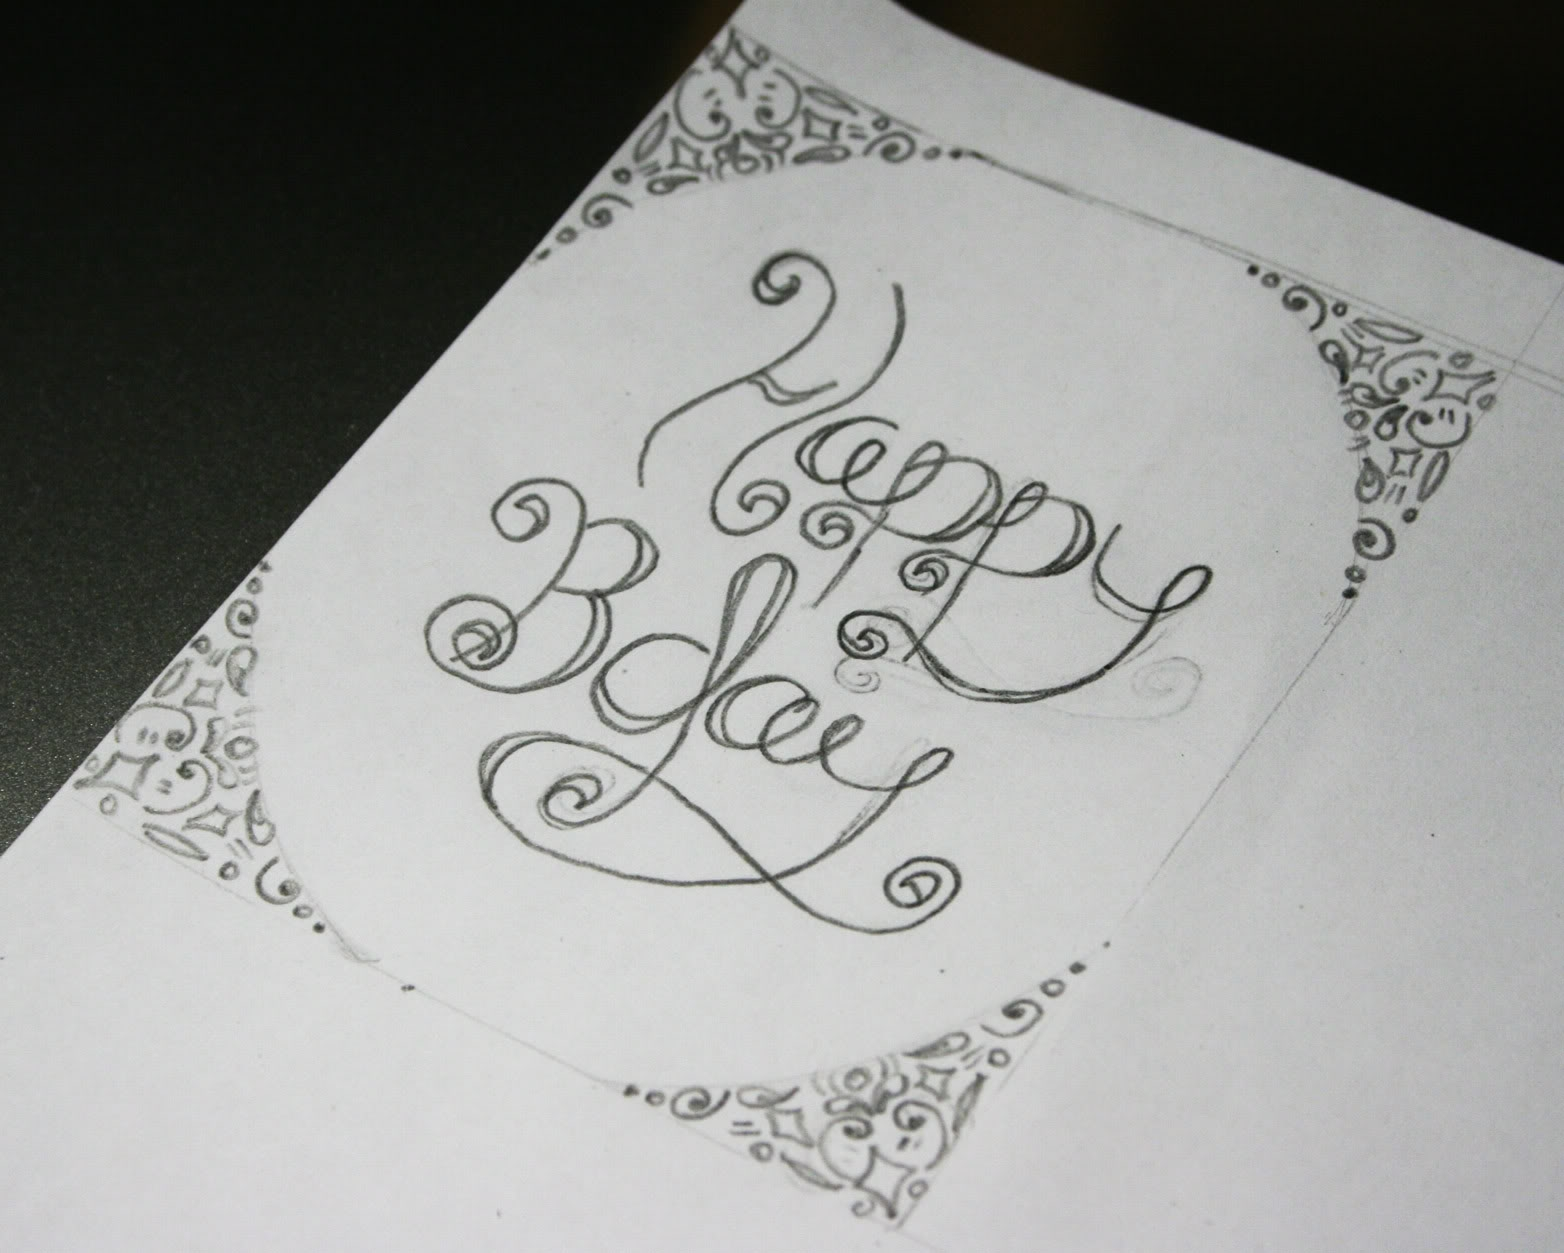 birthday card drawings free ; 38e0032dbaa49f8ecddabd553b8d6634